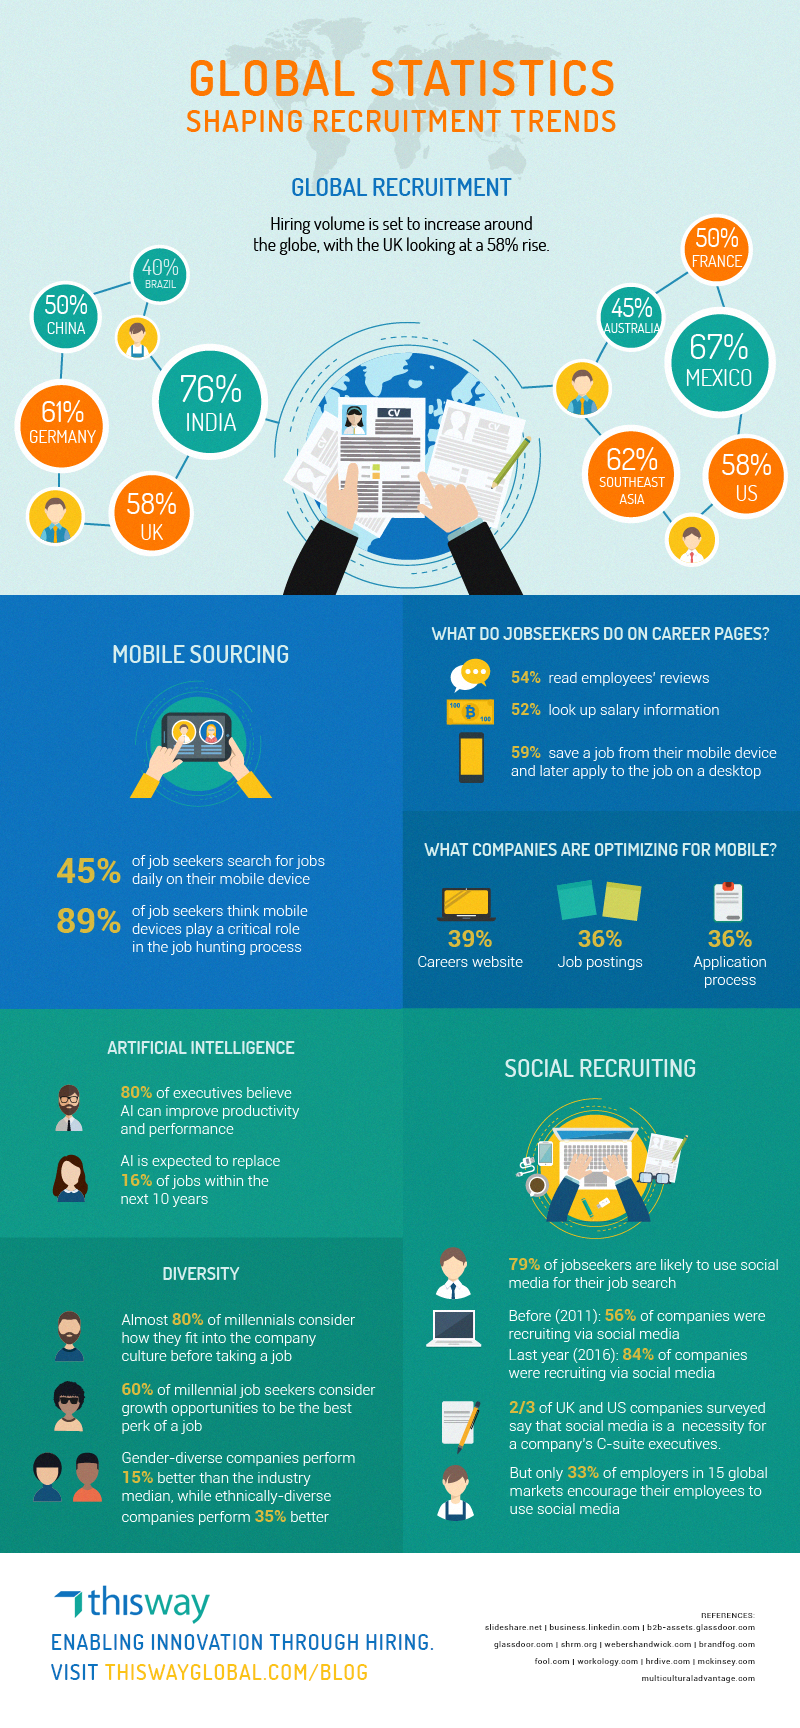 Global Statistics Shaping Recruitment Trends-Infographic.png